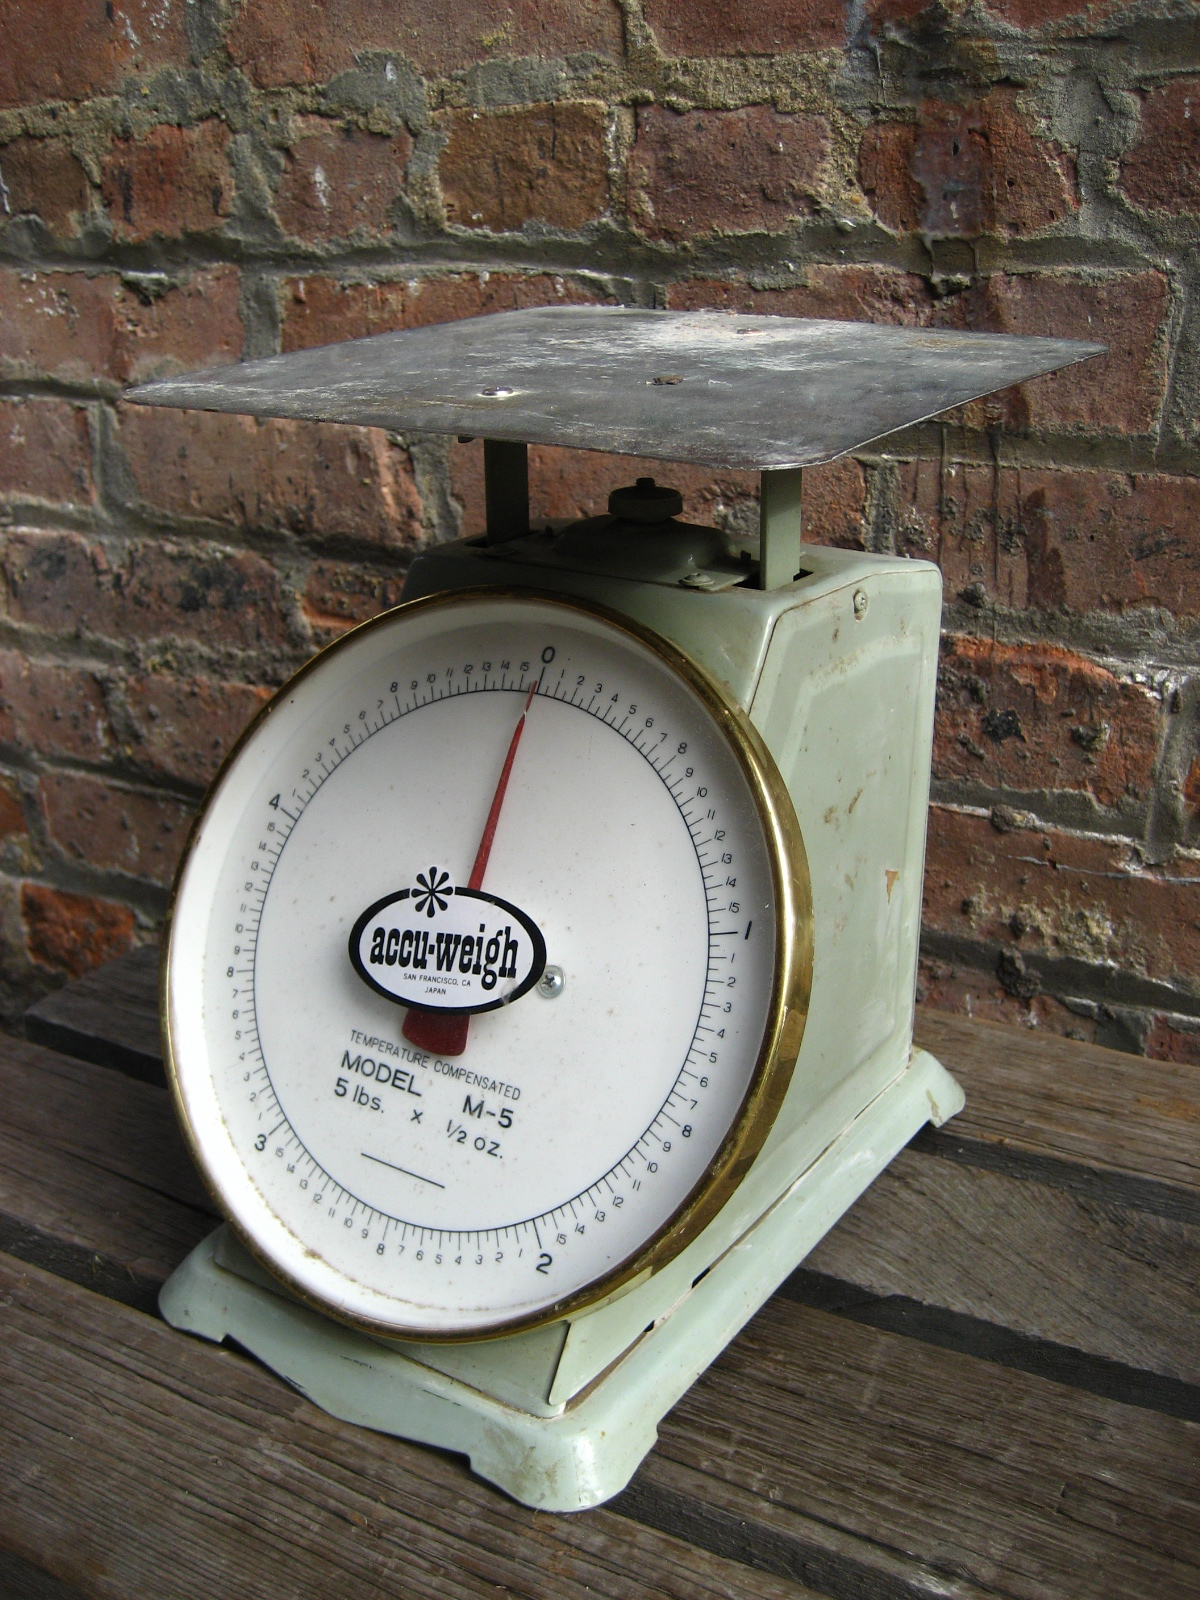 Grocery scale $45